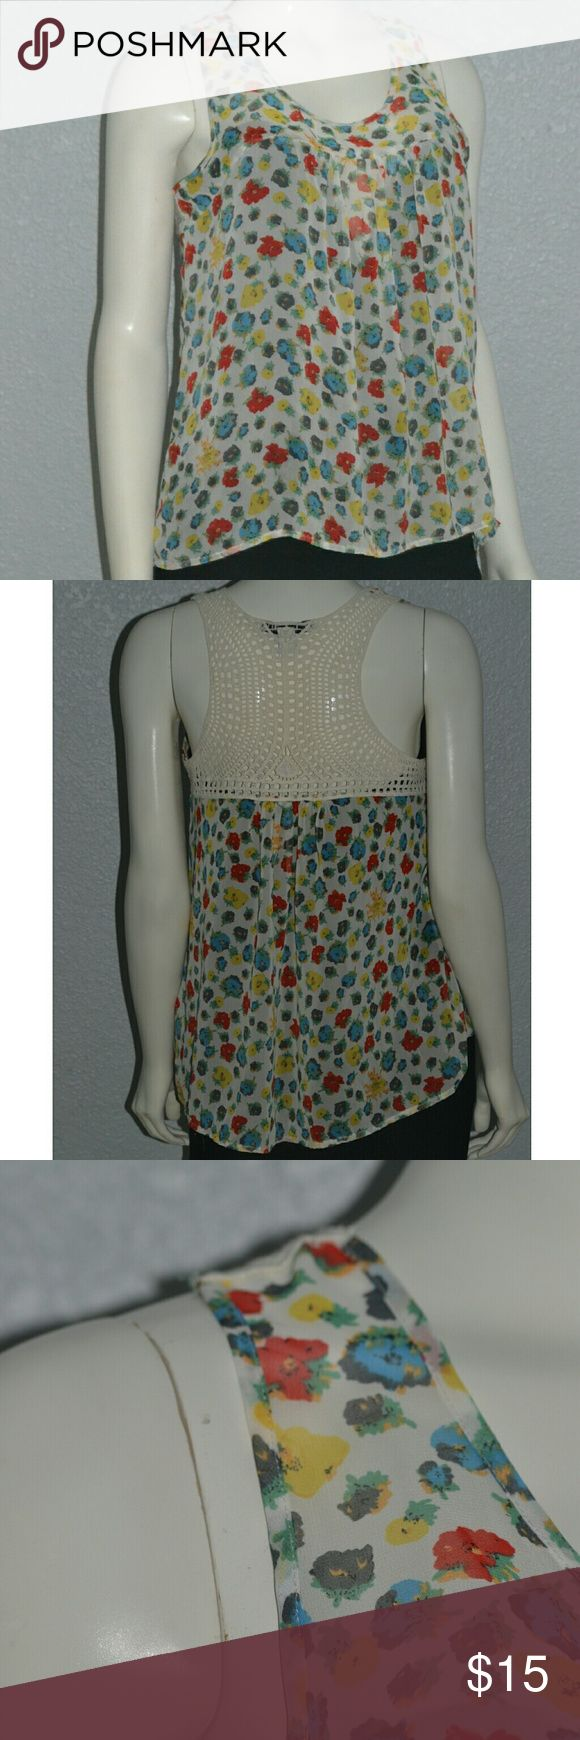 Forever 21 Floral See Through Tank Top Size Medium Forever 21 Floral See Through Tank Top Size Medium  Nice Spring And Summer Colors Blue Yellow, Red, White Crochet in back.  Made in Vietnam Rn#94981 CA#40198 100% Polyester. The under black shirt is not included!! Forever 21 Tops Tank Tops